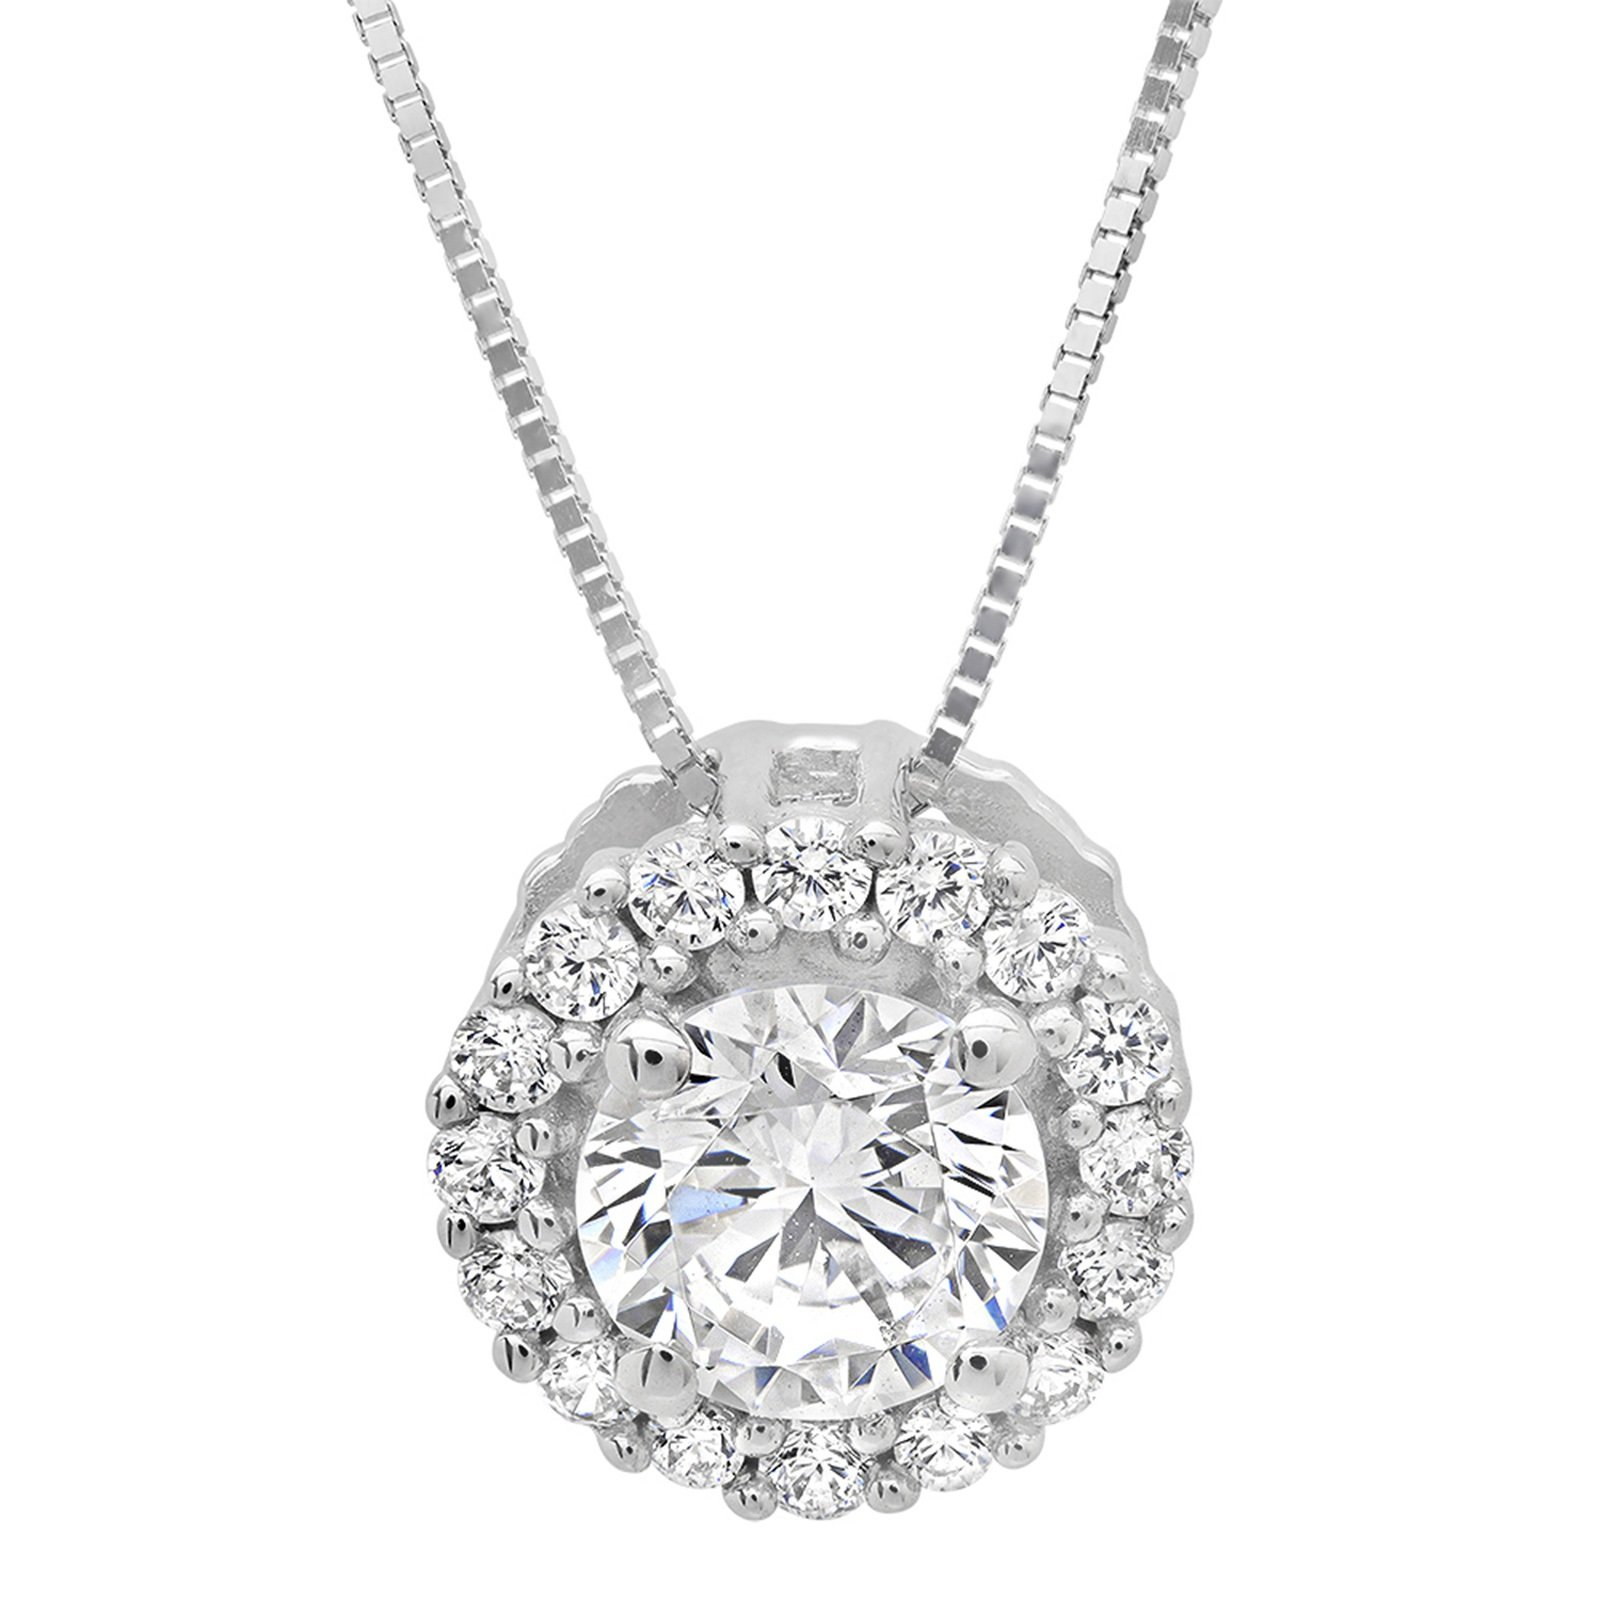 "Clara Pucci 1.2 CT Brilliant Round Cut Pave Halo 14K White Gold Pendant Box Necklace + 16"" Chain"